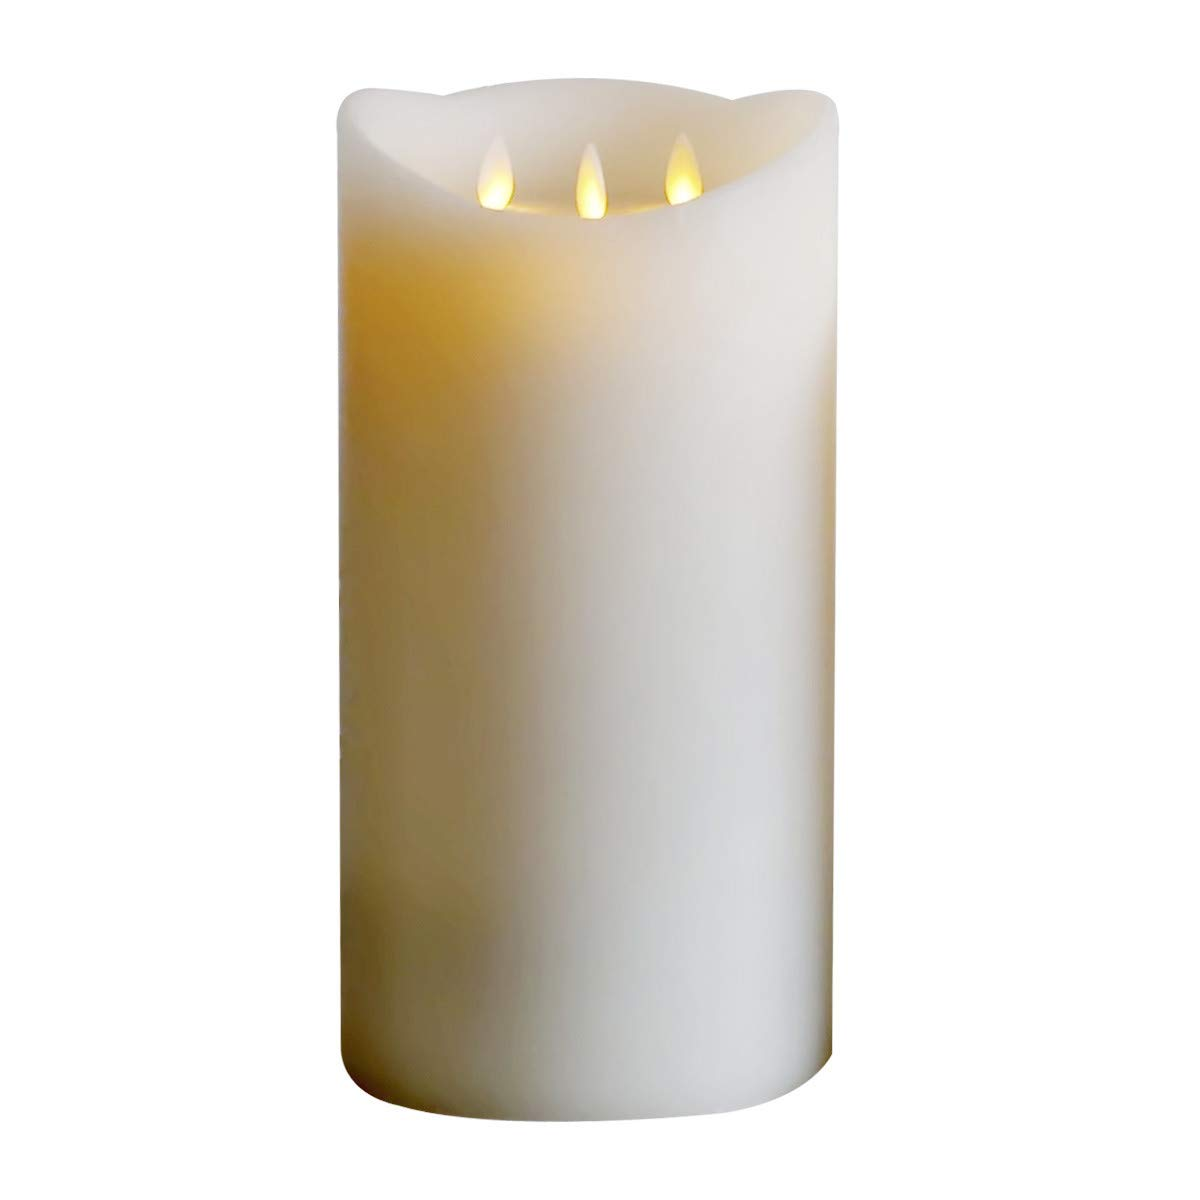 12'Huge 3-Wicks Flameless Candles Real Wax Pillars Include Realistic Dancing LED Flames and Remote Control with 24-Hour Timer Function by 3 -C Batteries(not Included),Battery operarated